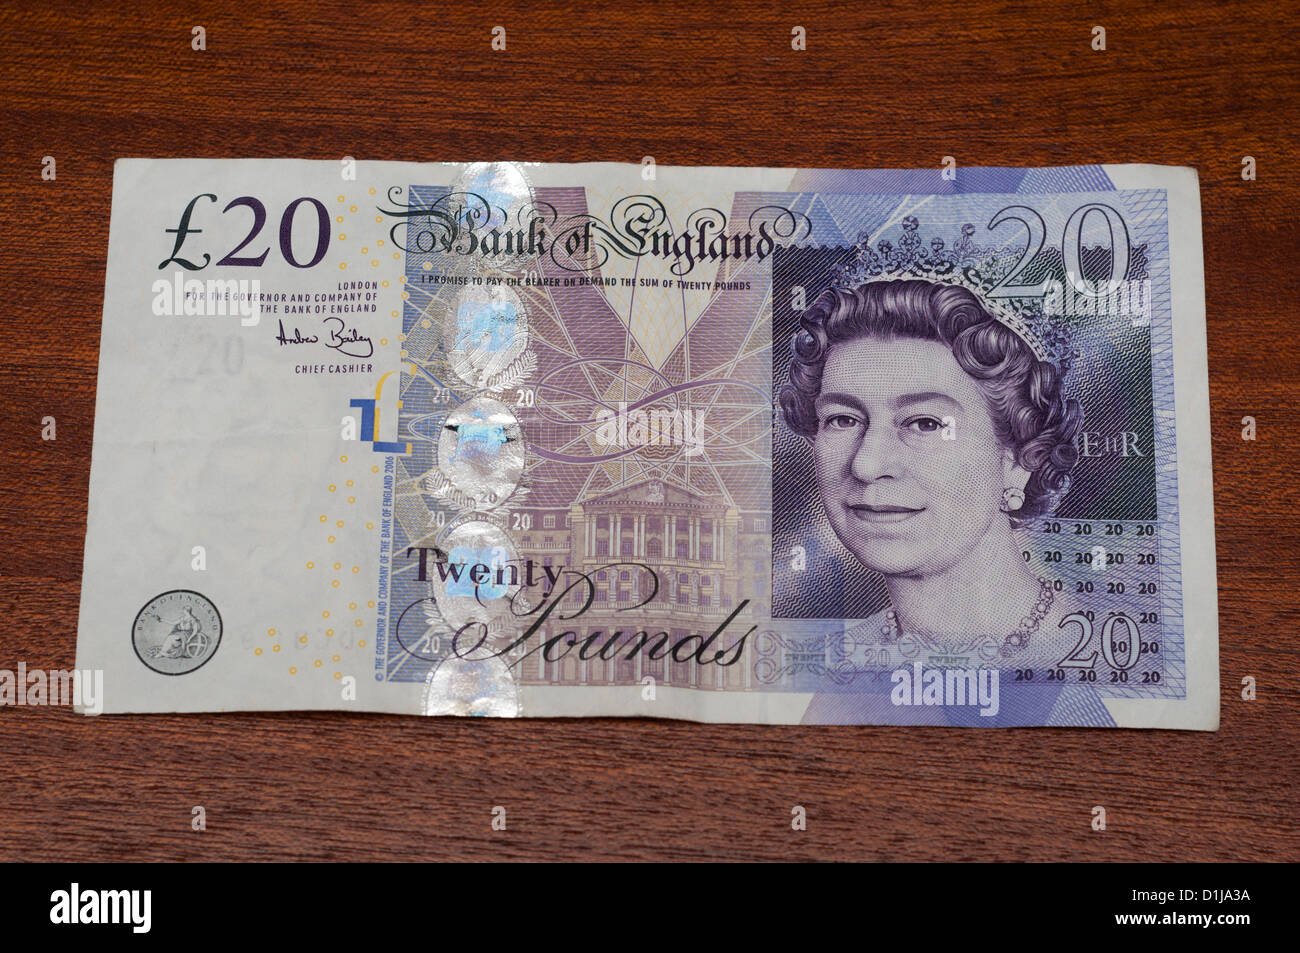 Bank of England sterling currency bank notes. - Stock Image